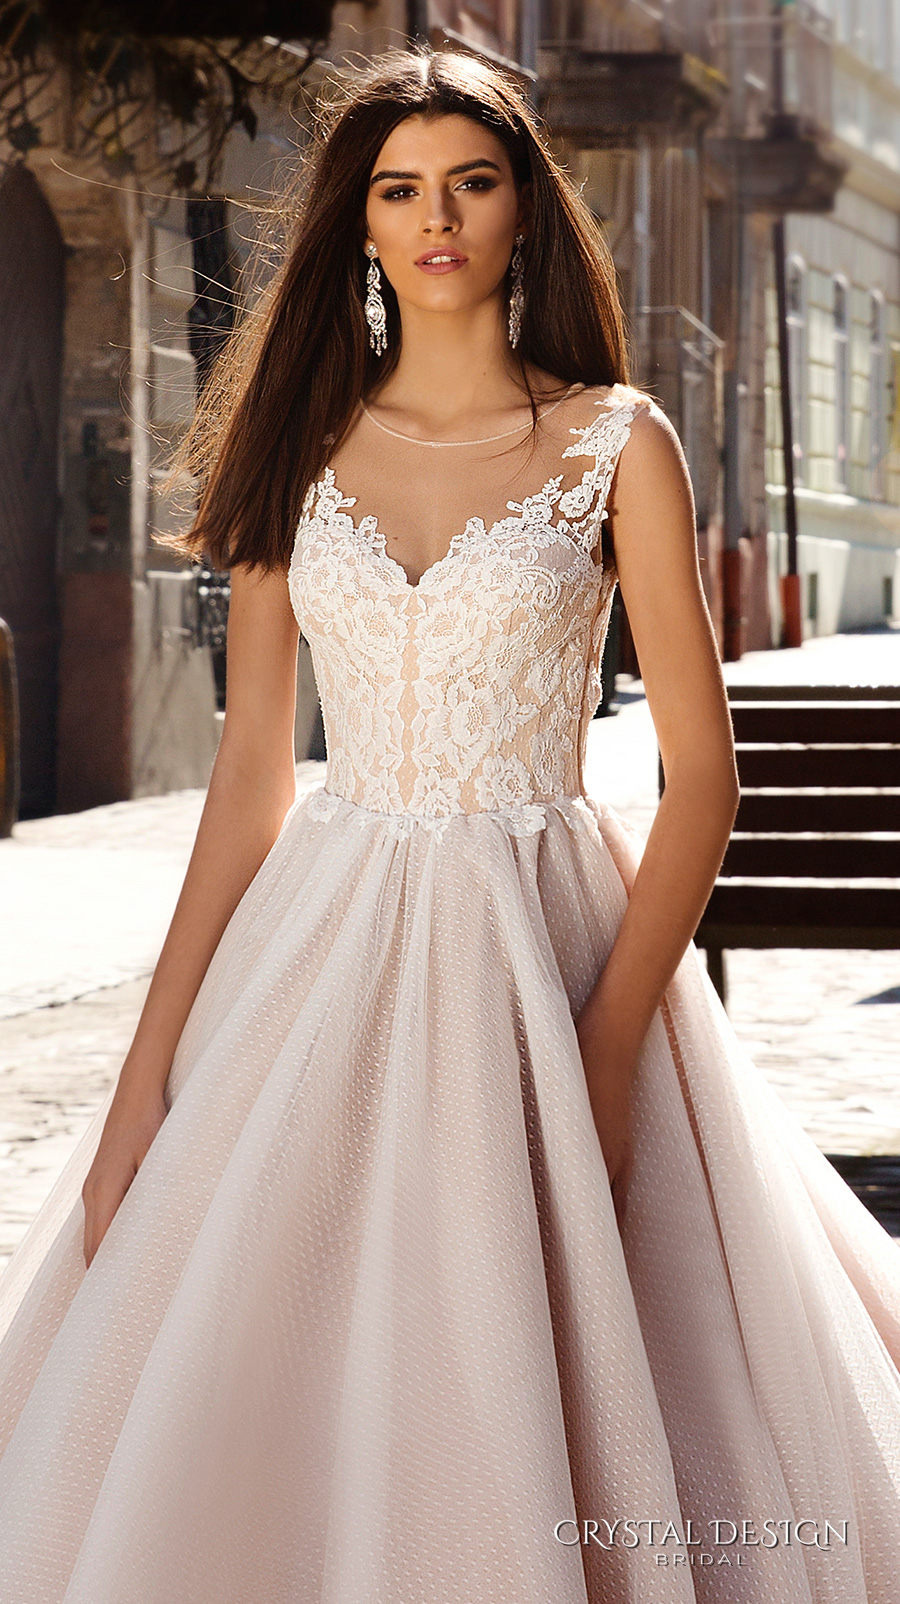 crystal design bridal 2016 sleeveless illusion round neckline v neck lace embellished bodice gorgeous princess ball gown wedding dress chapel train (avrora) zv